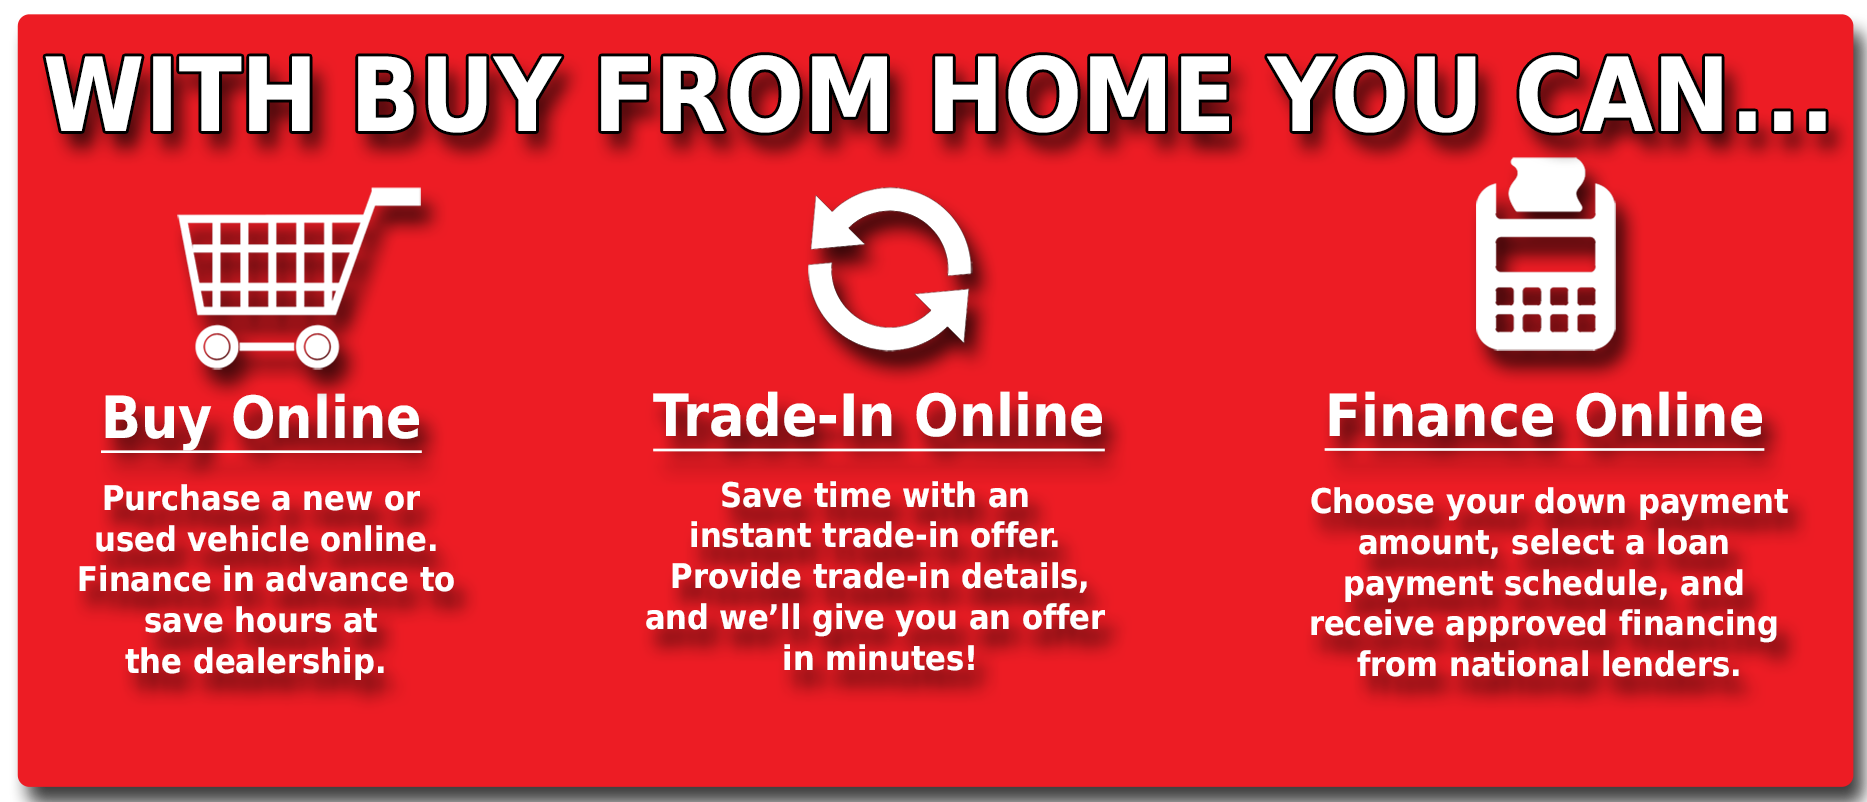 Buy-From-Home